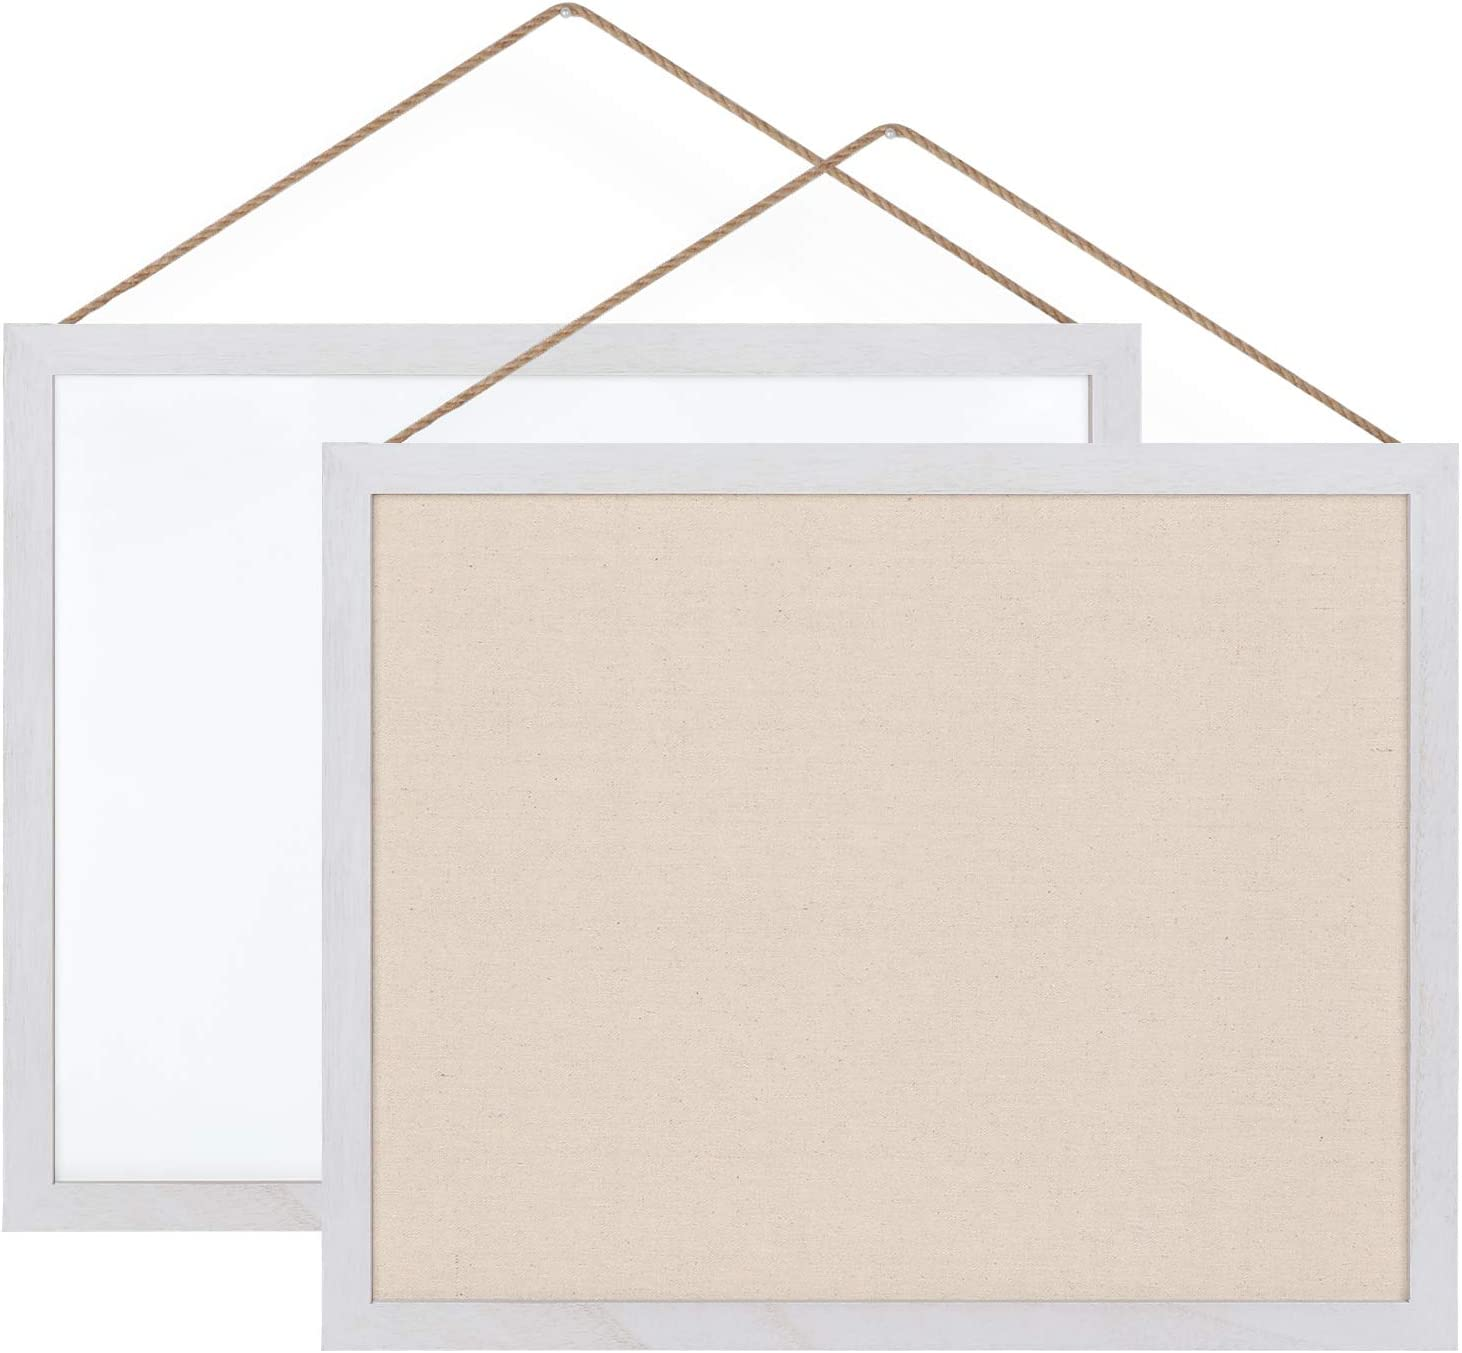 Emfogo Cork Board with 19x15 inch Combination White Board & Bulletin Cork Board 1-Pack Bulletin Board for Wall Home Office Decor,Home School Office Message Board or Vision Board